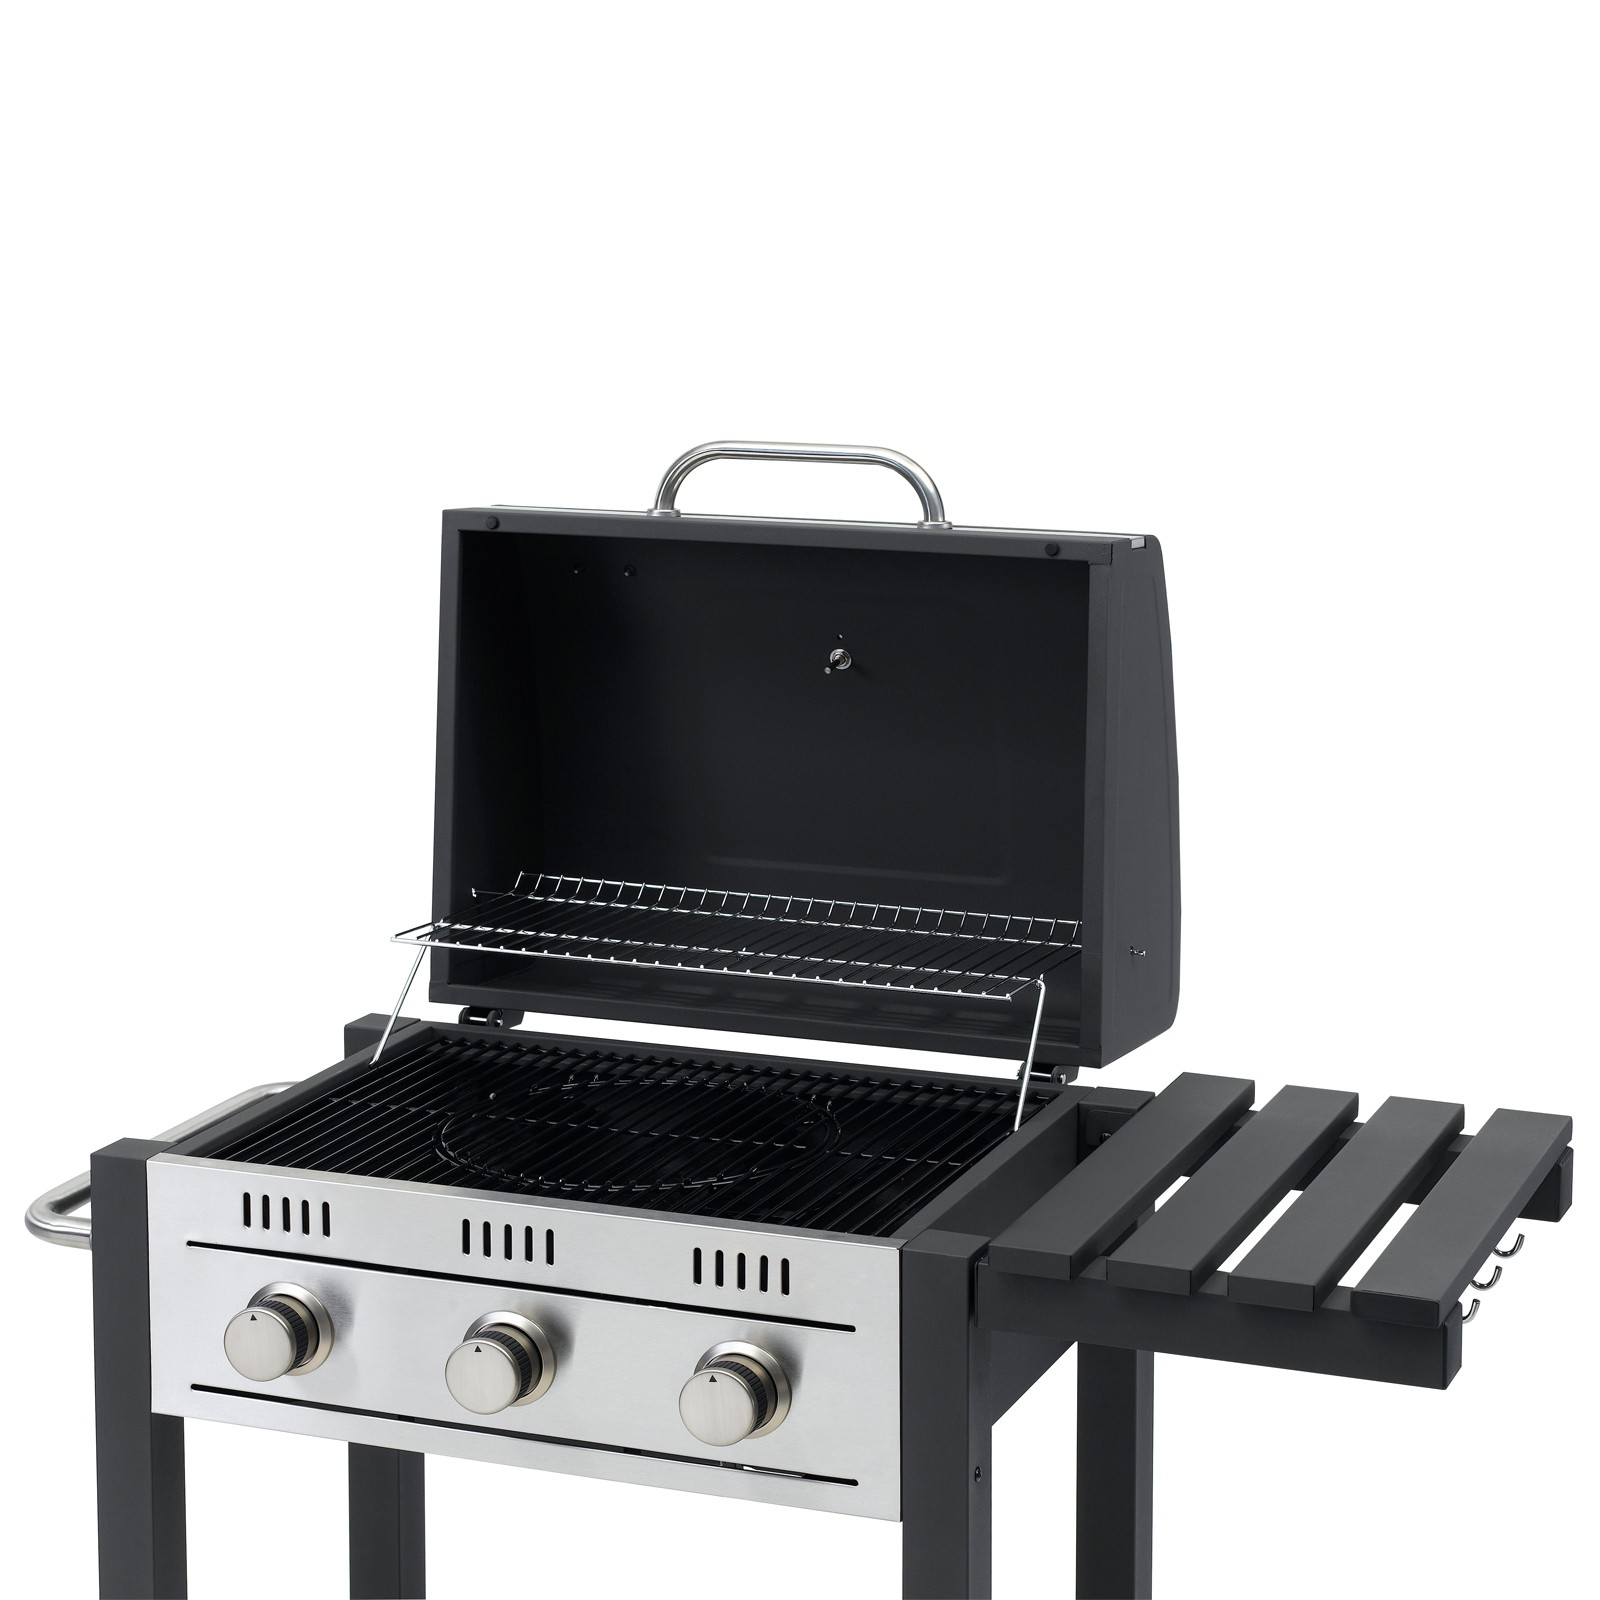 tepro gasgrill grillwagen barbecue gasgrillwagen toronto mit 3 edelstahl brenner ebay. Black Bedroom Furniture Sets. Home Design Ideas